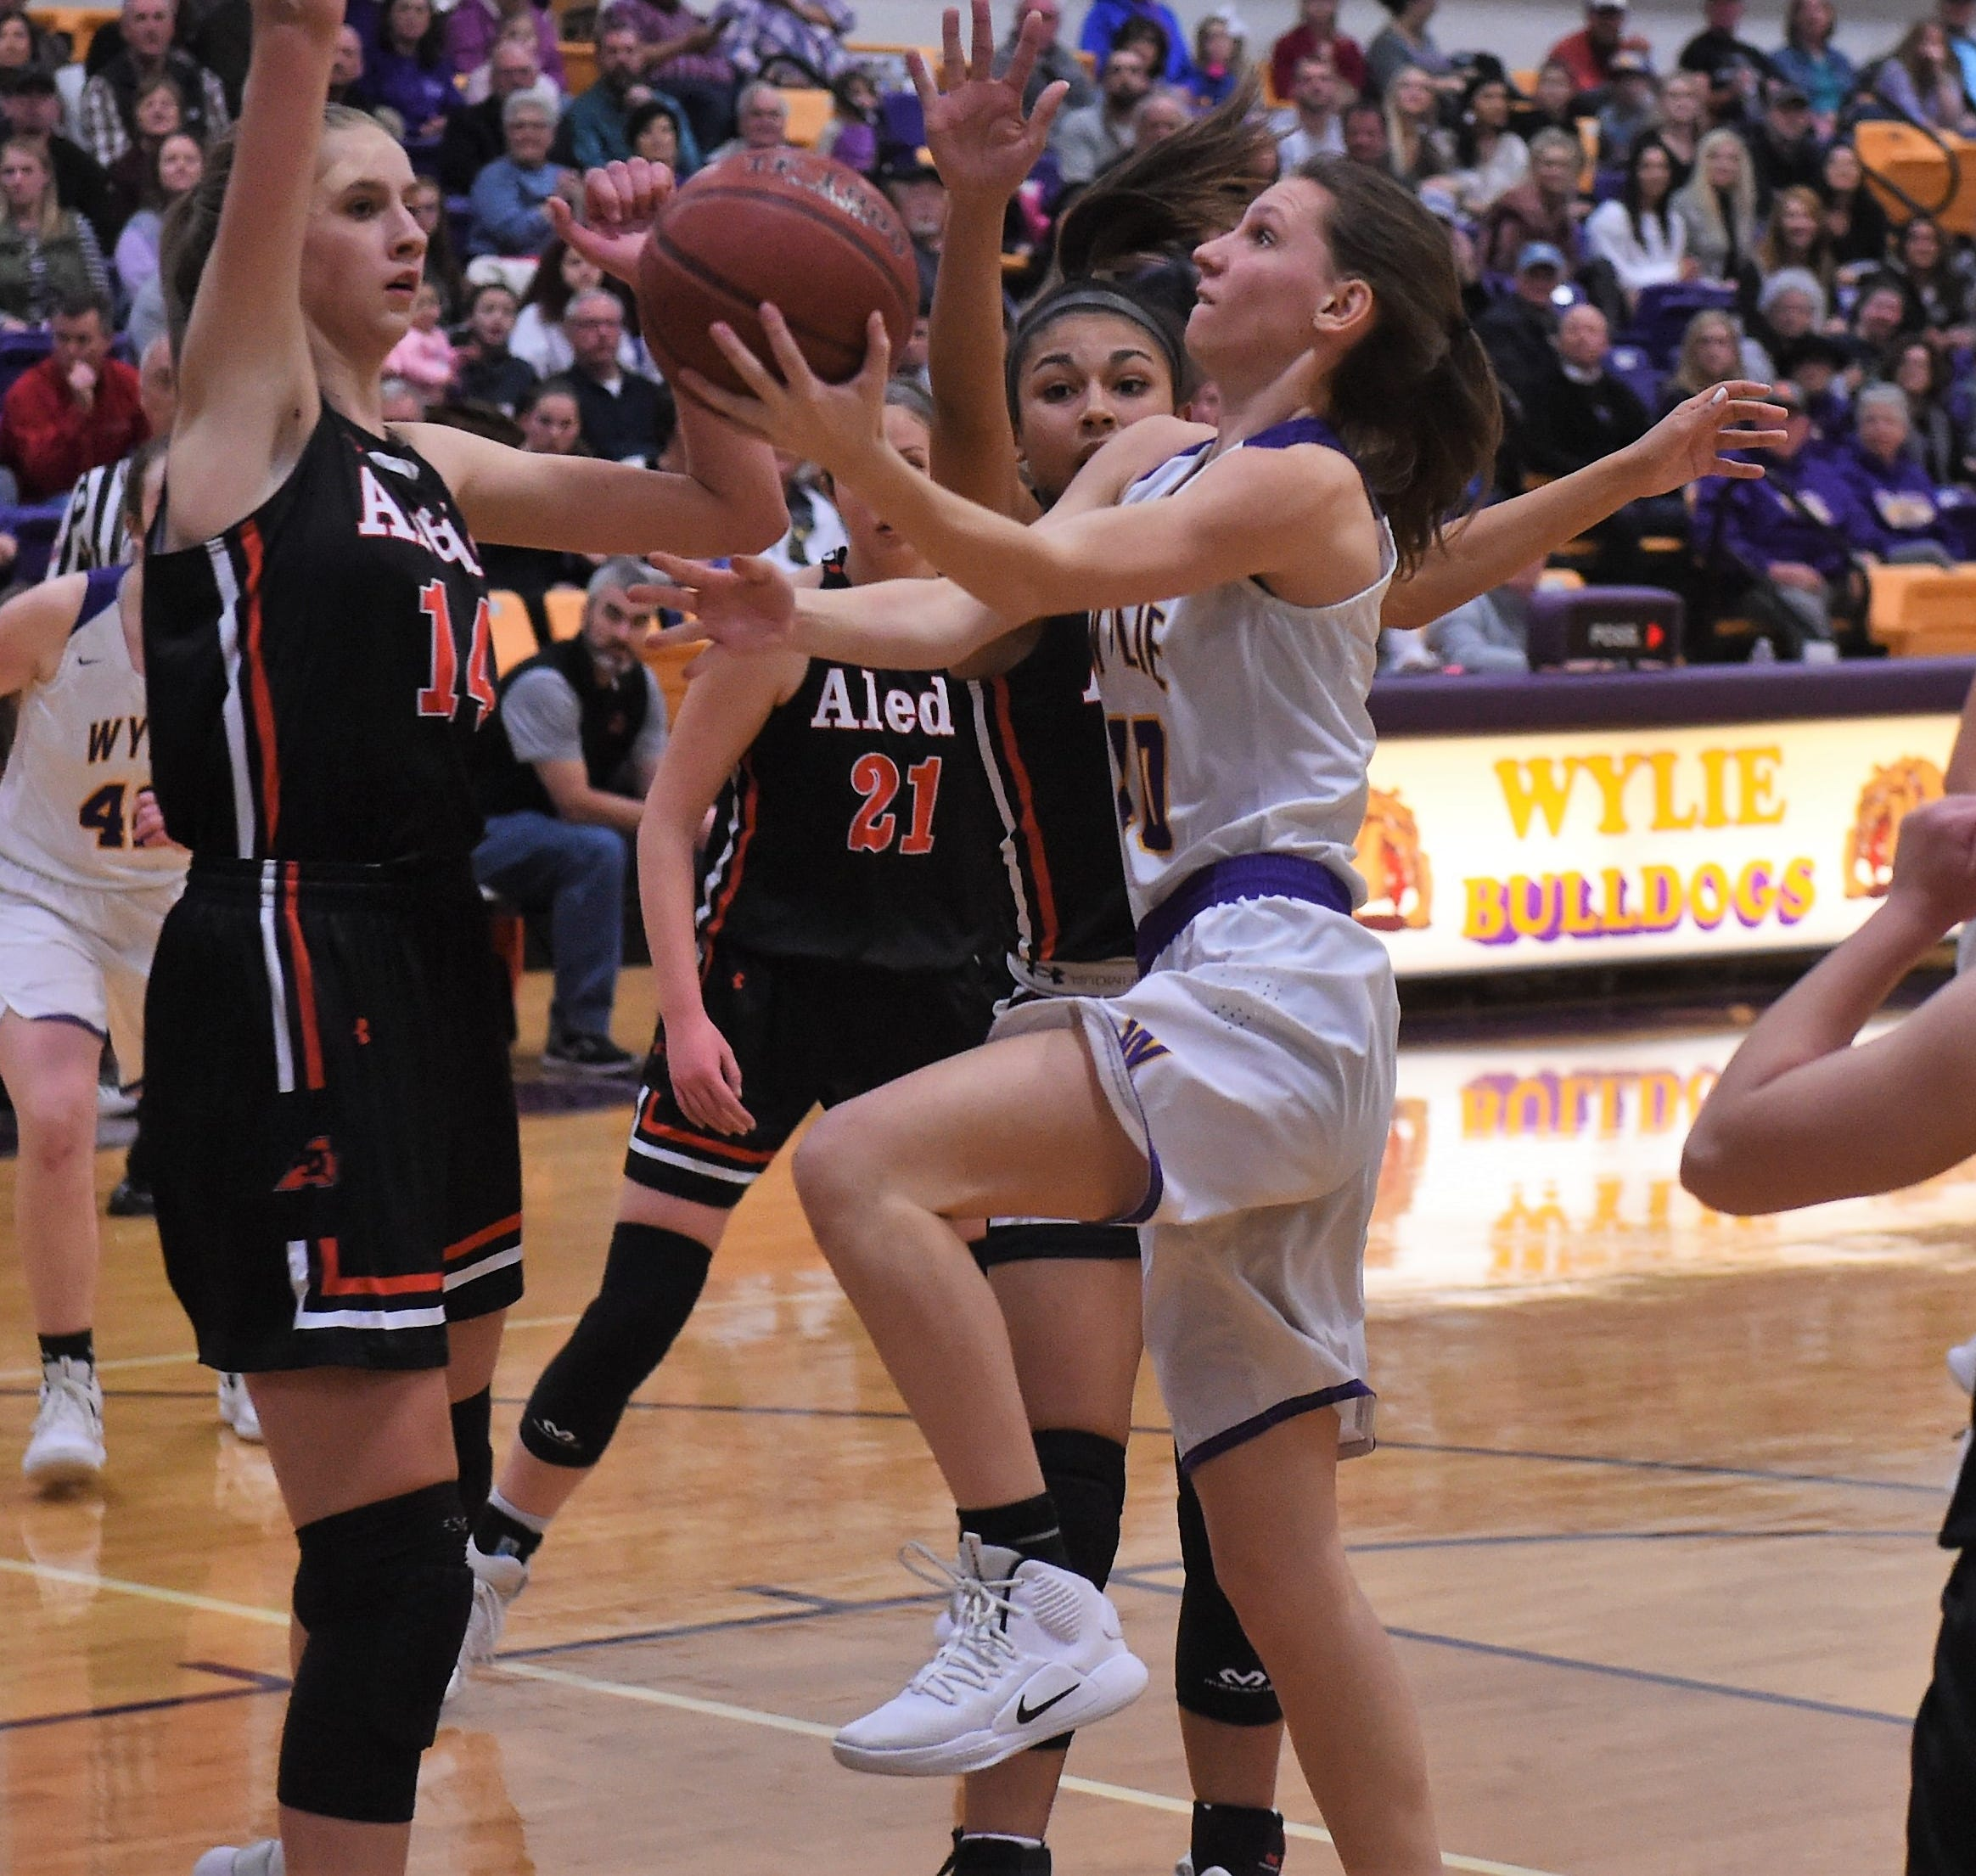 Wylie's Abbey Henson (10) goes up for a shot around a pair of Aledo defenders during Tuesday's District 4-5A contest at Bulldog Gym. Henson scored 15 points in the 51-47 overtime loss.